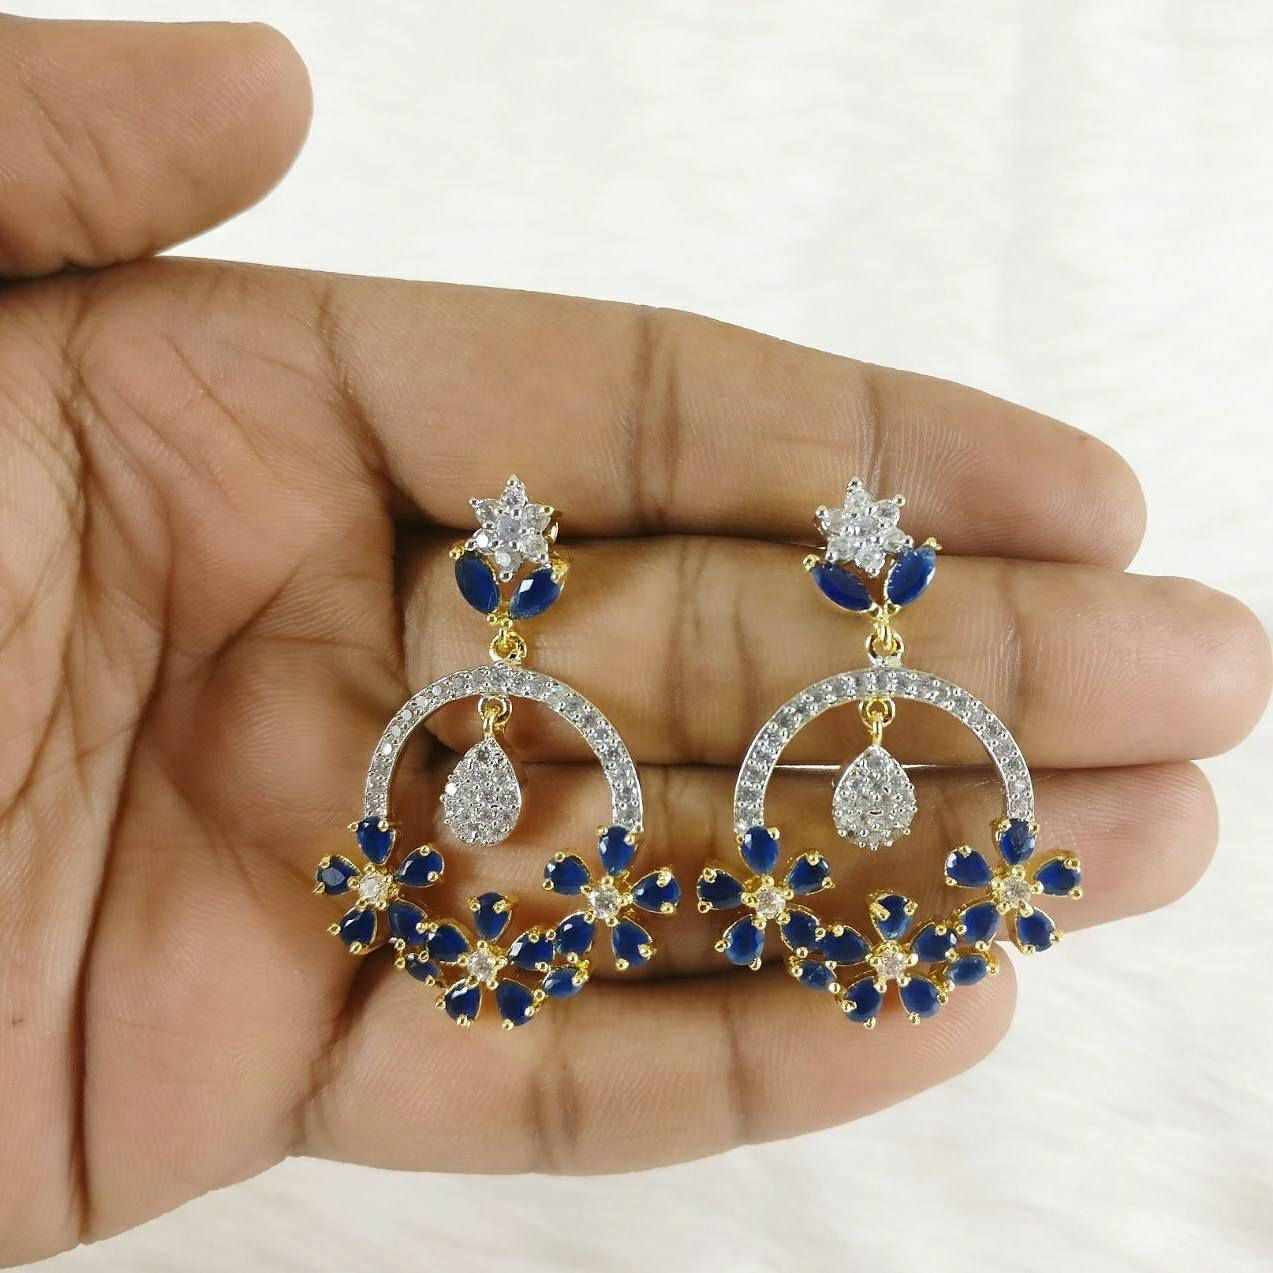 Cubic zirconia chandelier earrings fashion twotone gold earring cubic zirconia chandelier earrings fashion twotone gold earring pair sapphire stones round shaped jewellry by chizzyafriquejewel arubaitofo Images